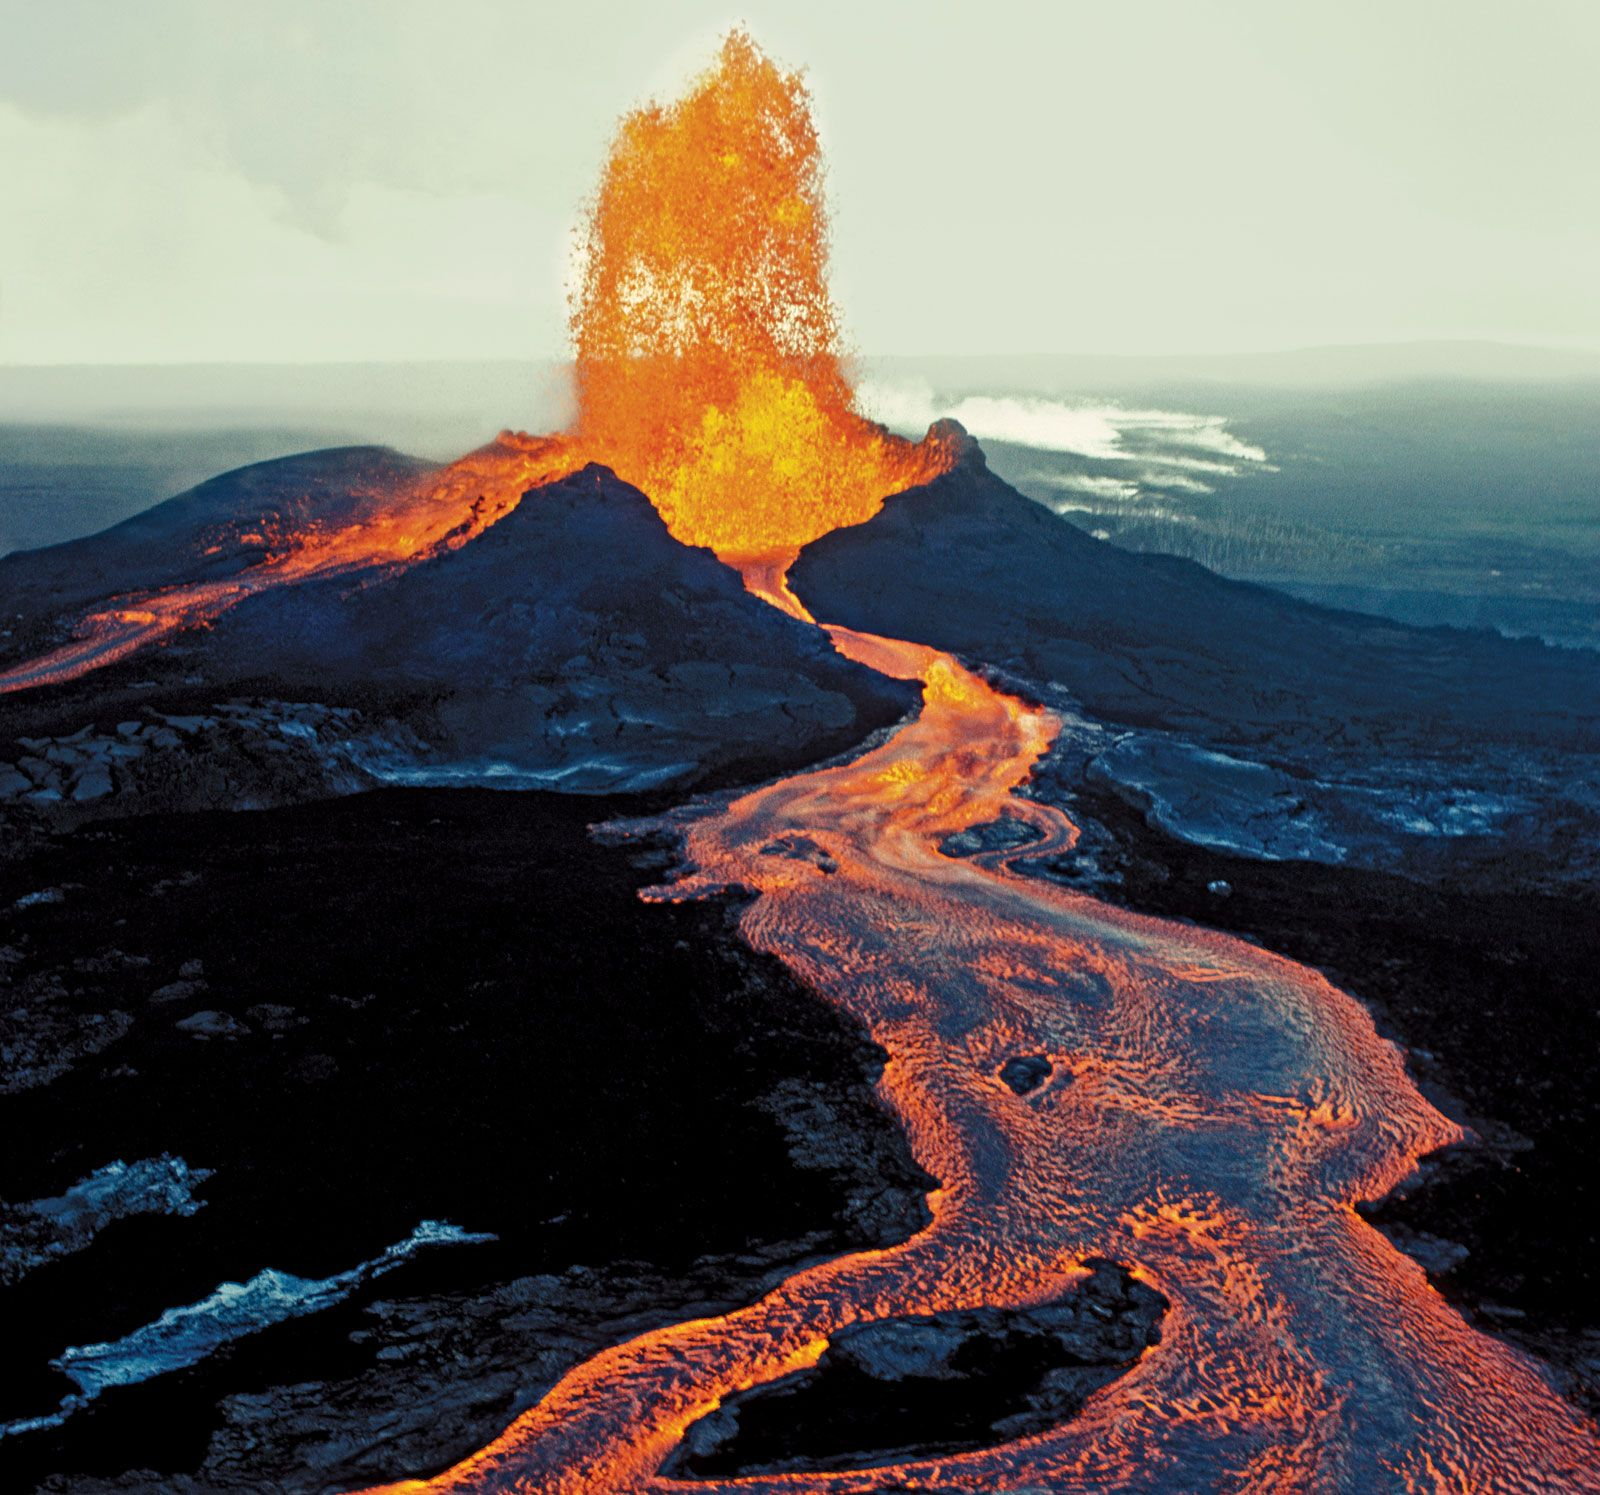 Mauna Loa, Hawaii - most famous volcanoes in the world